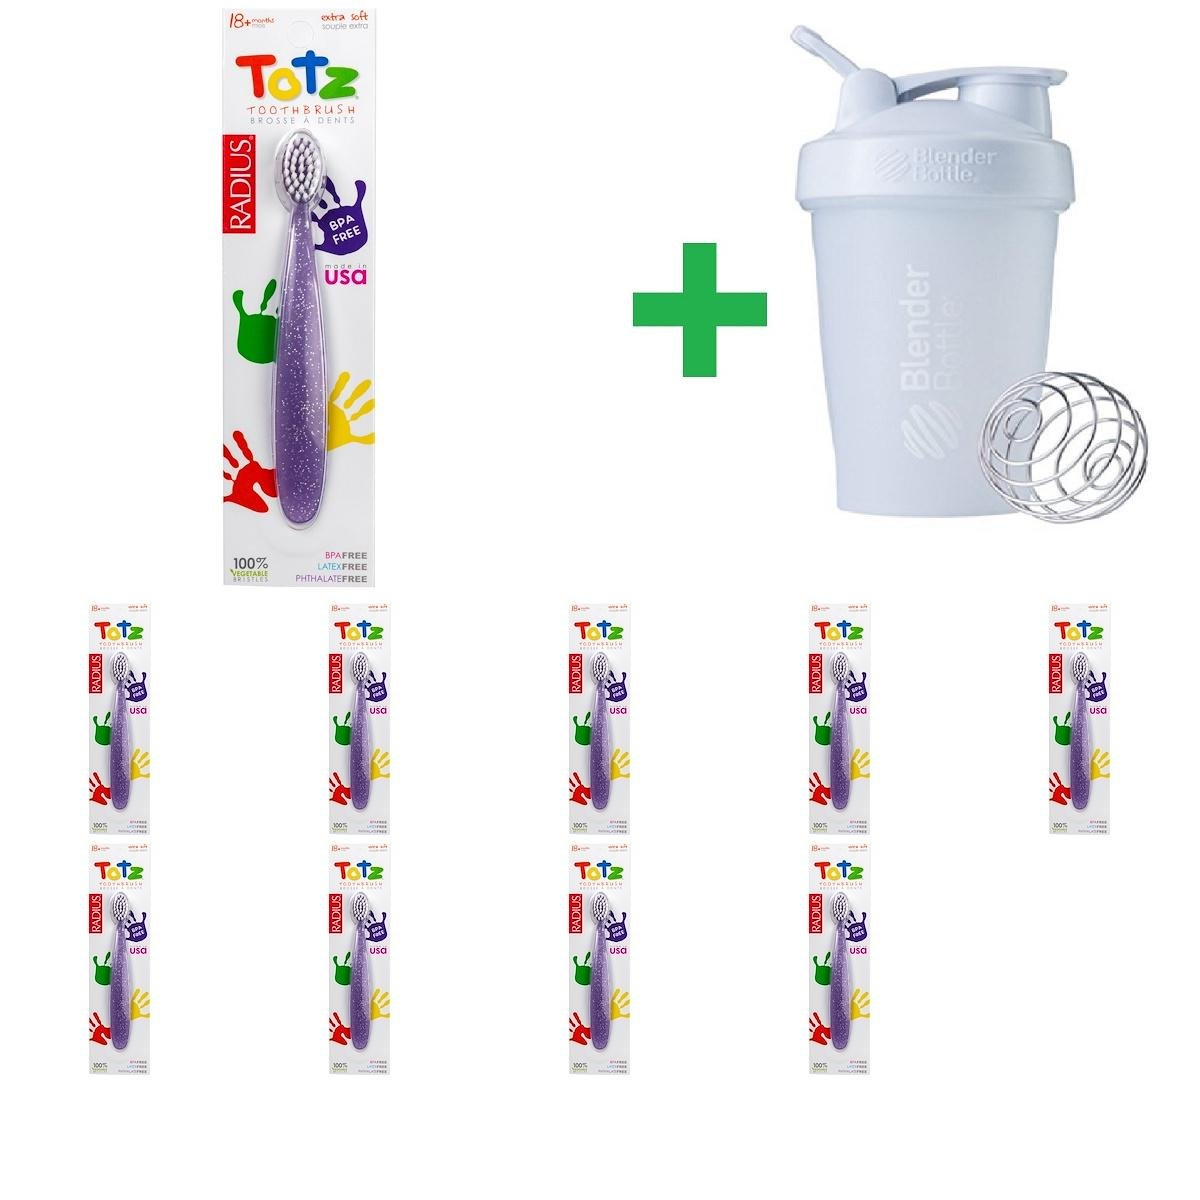 RADIUS, Totz Toothbrush, 18+ Months, Extra Soft, Purple Sparkle(10 Packs)+ Assorted Sundesa, BlenderBottle, Classic With Loop, 20 oz